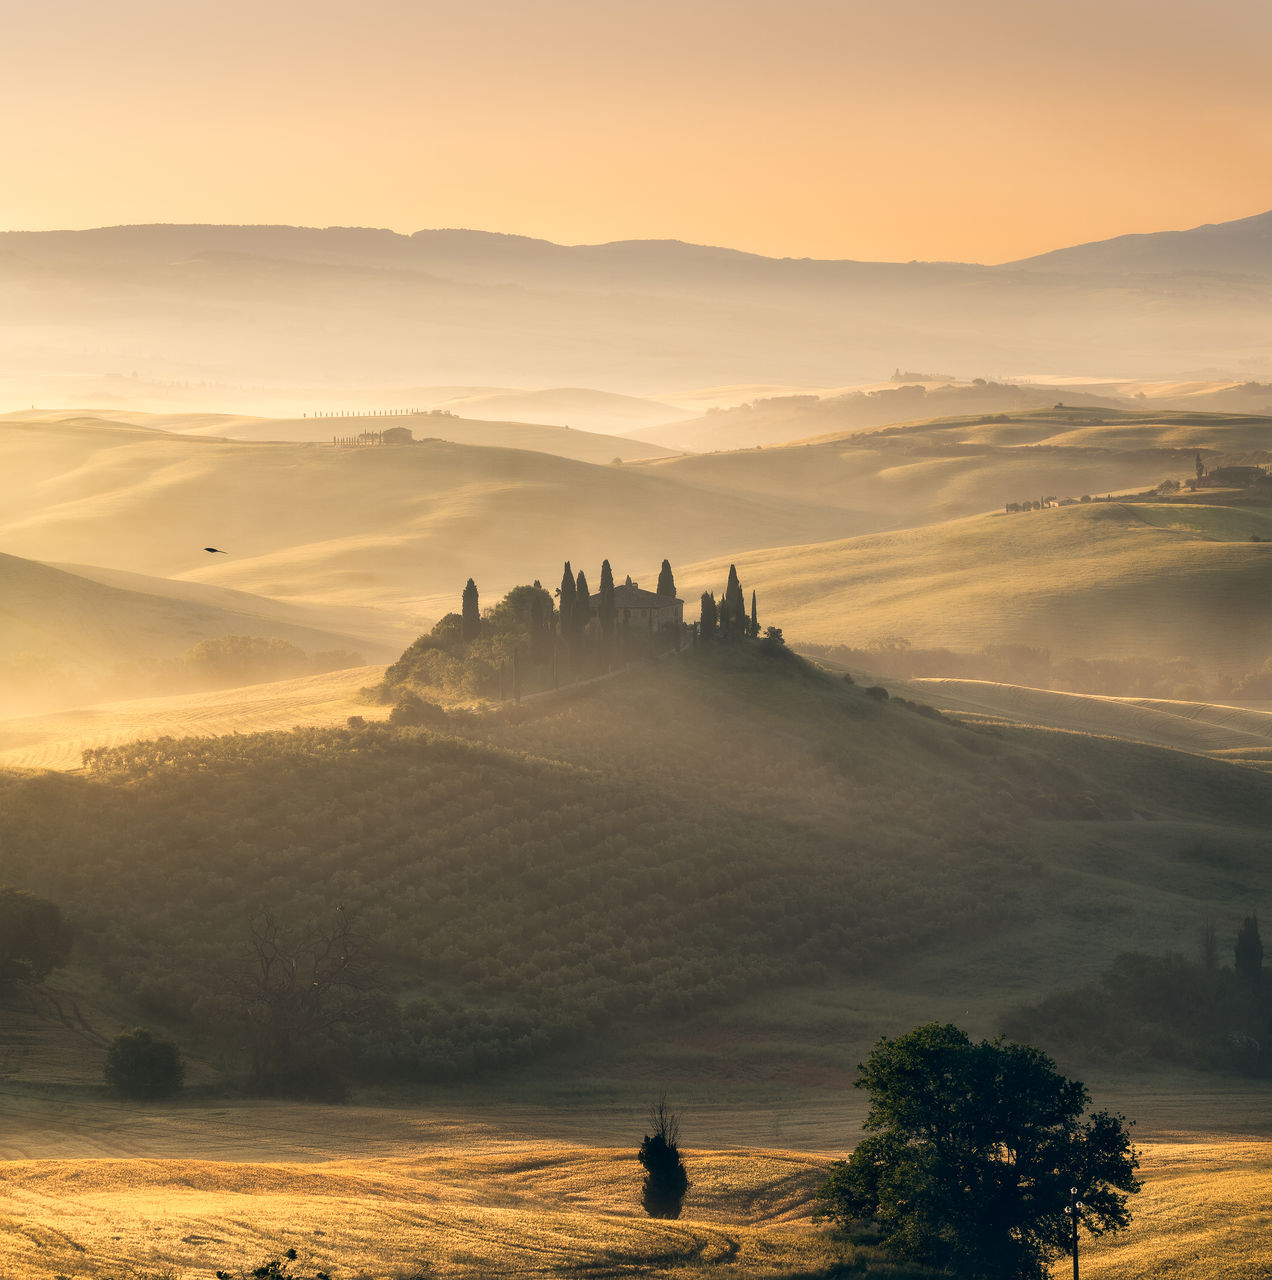 sky, scenics - nature, beauty in nature, tree, sunset, plant, tranquil scene, mountain, nature, orange color, landscape, architecture, tranquility, fog, environment, non-urban scene, travel destinations, built structure, idyllic, building exterior, no people, outdoors, ancient civilization